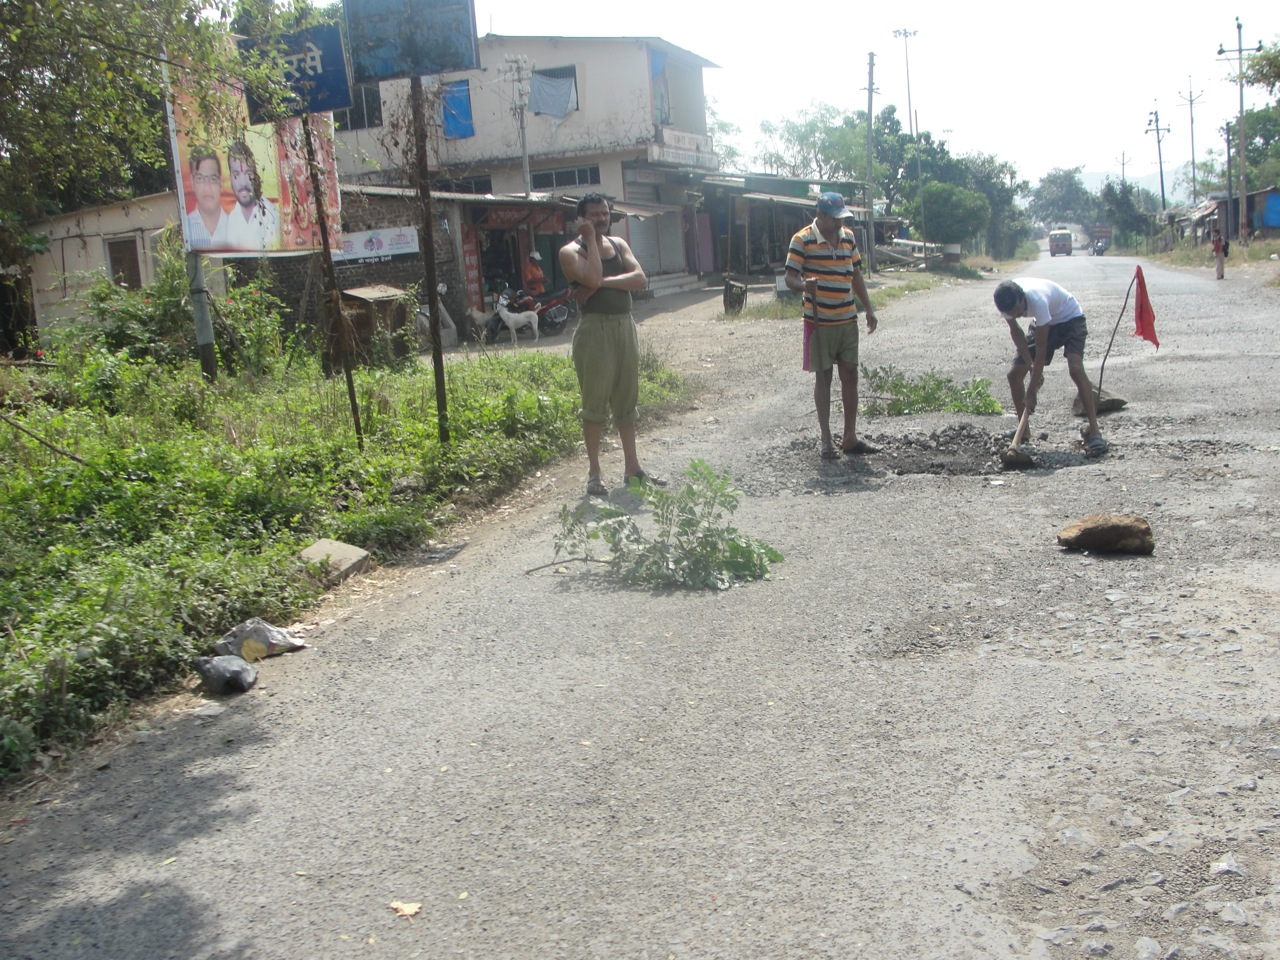 Men repairing road in India